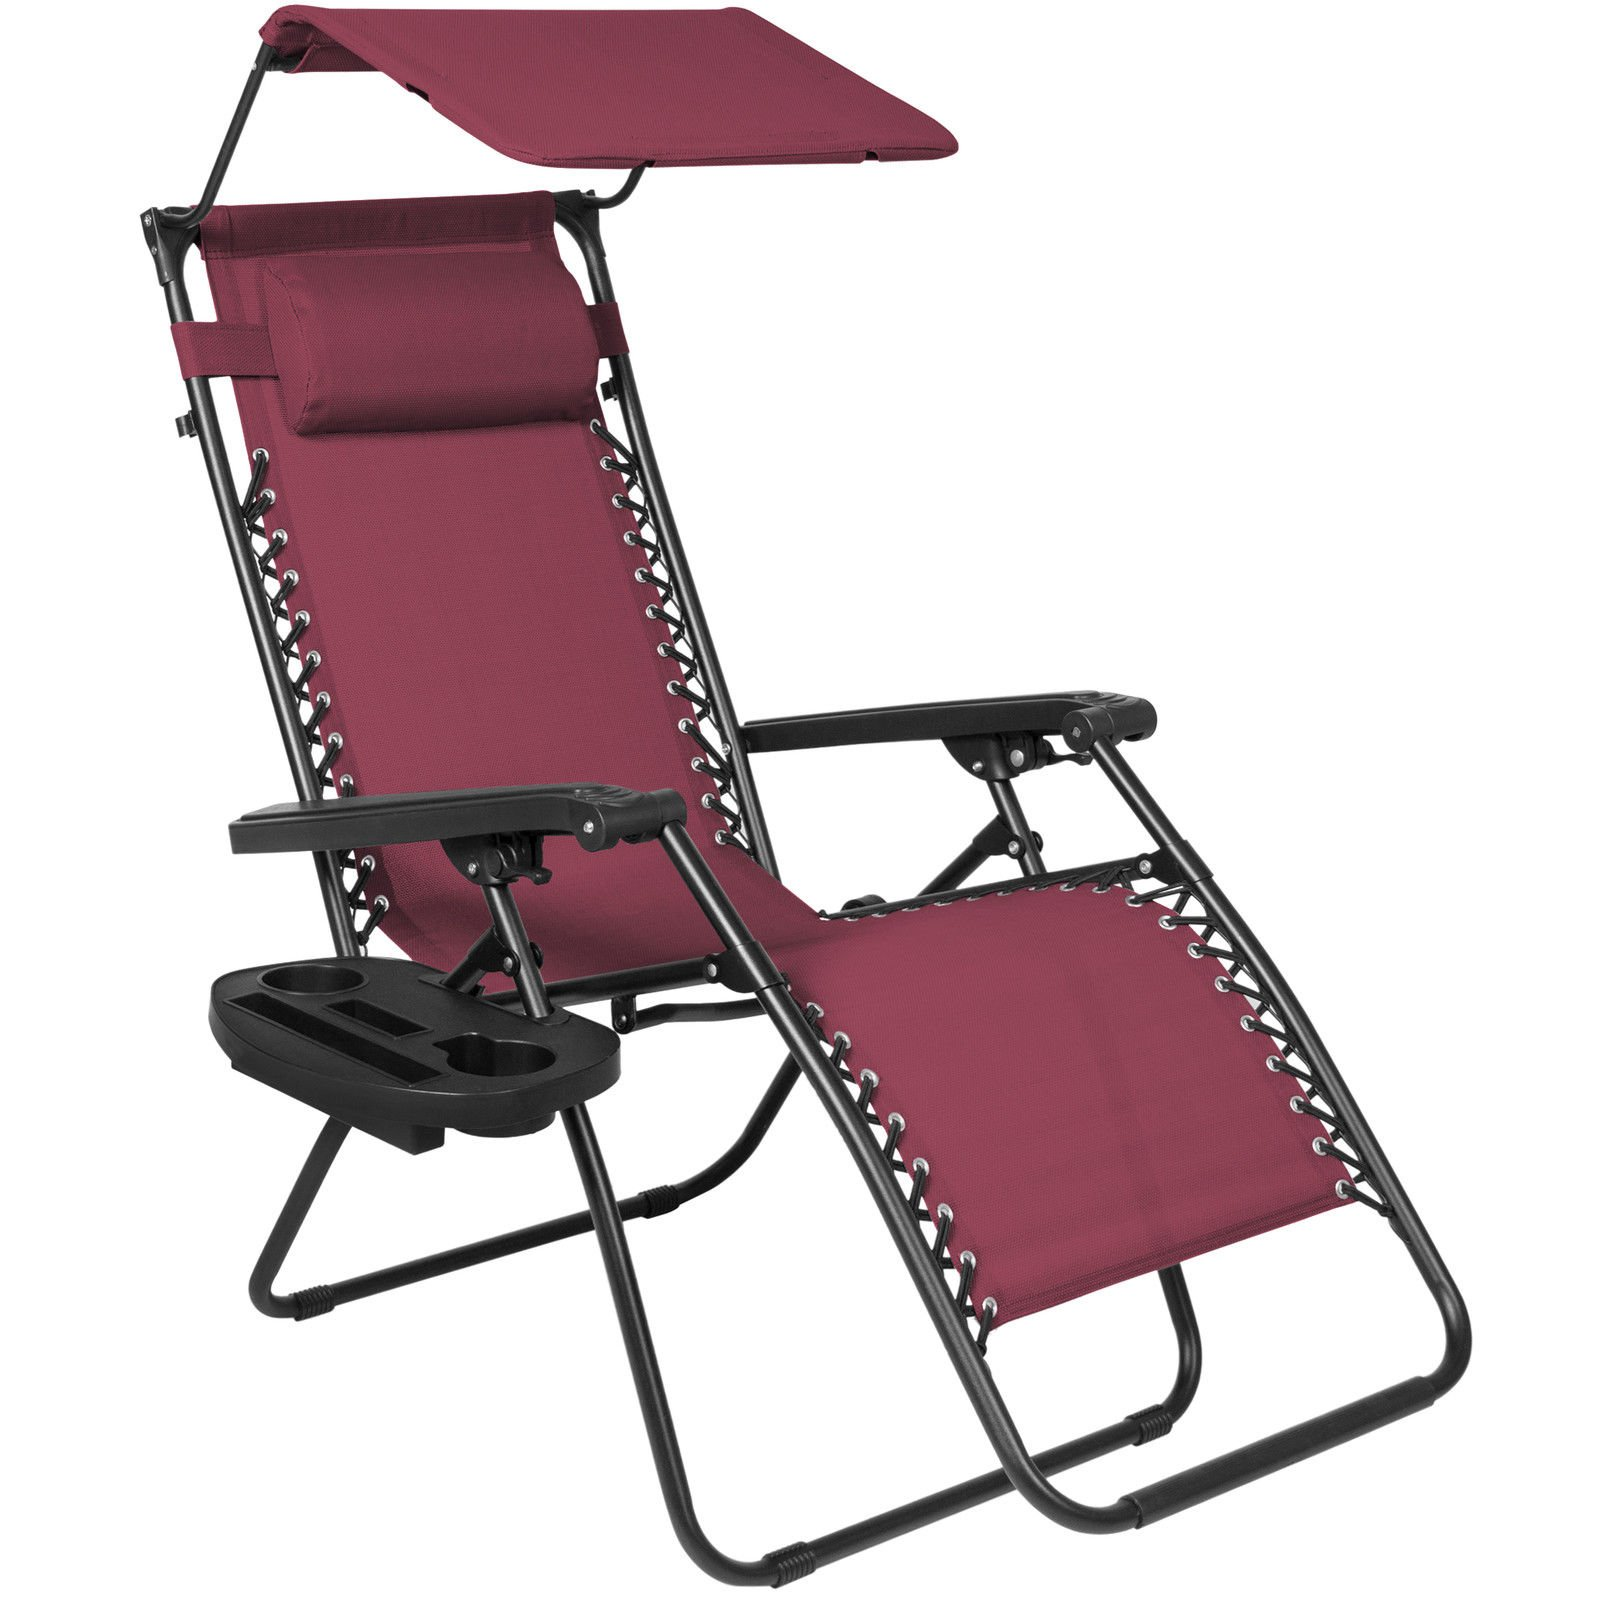 Buy Folding Reclining Burgundy Lounge Chair Now!